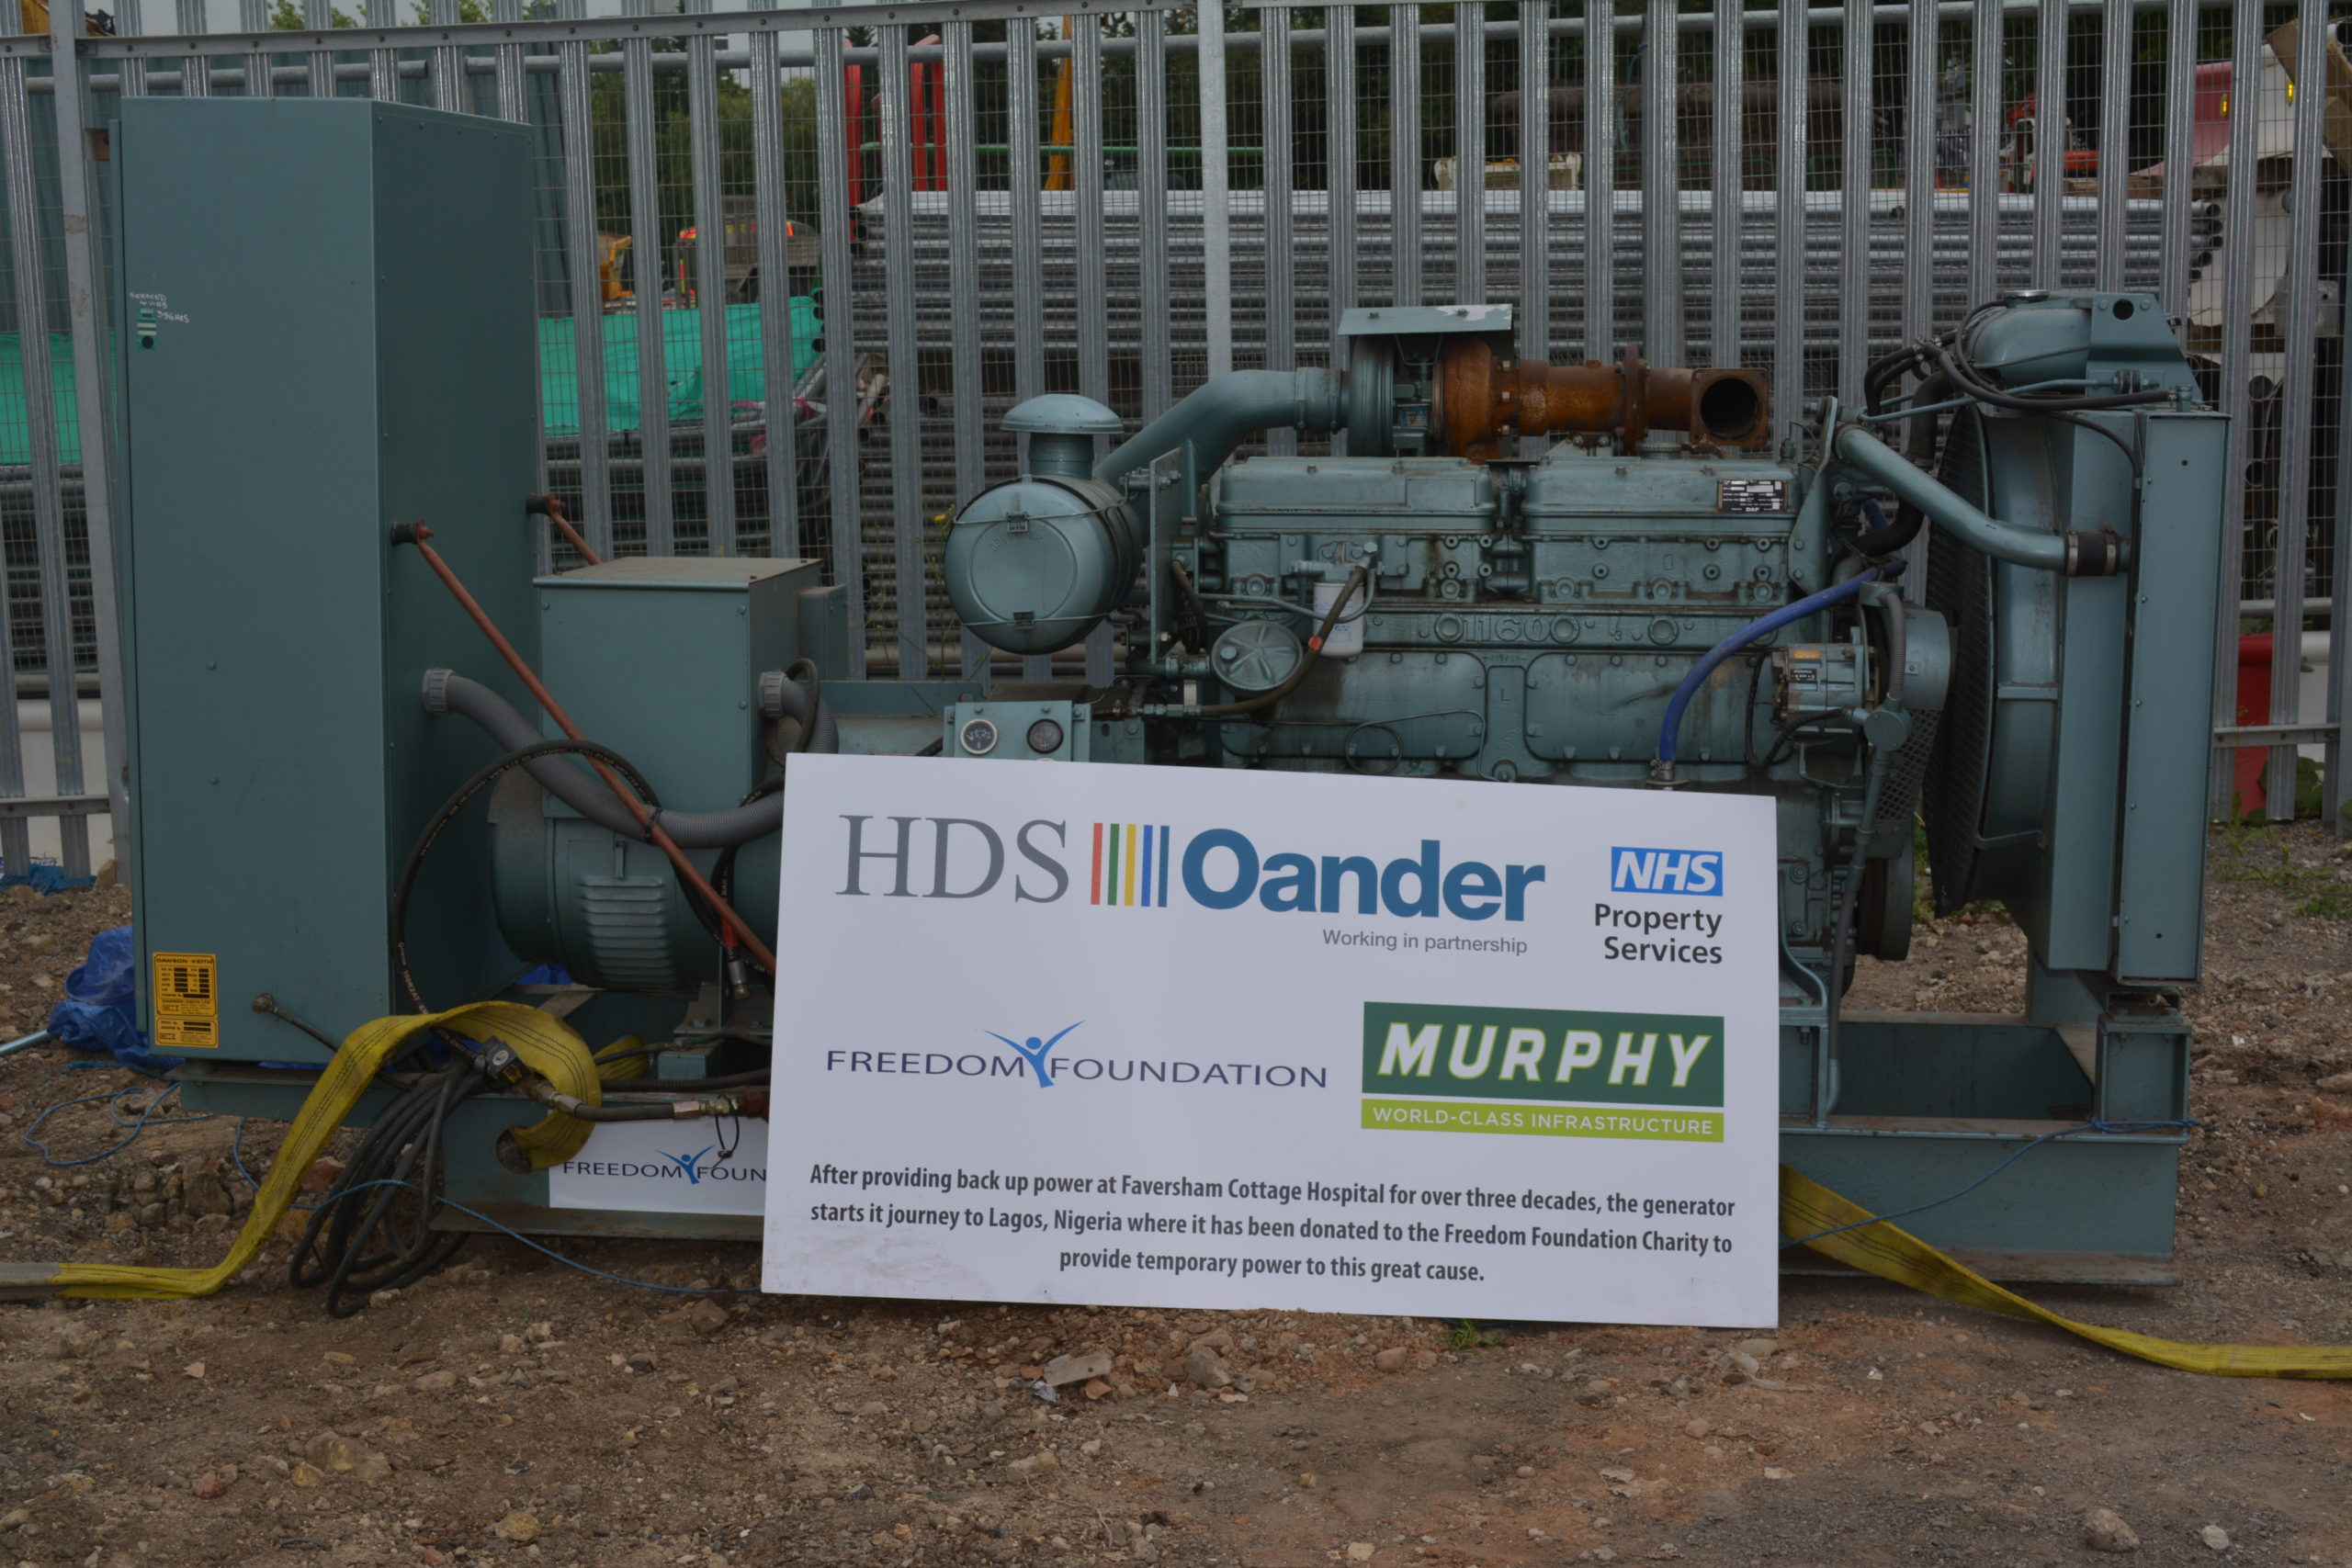 Backup generator donated to the Freedom Foundation in Nigeria